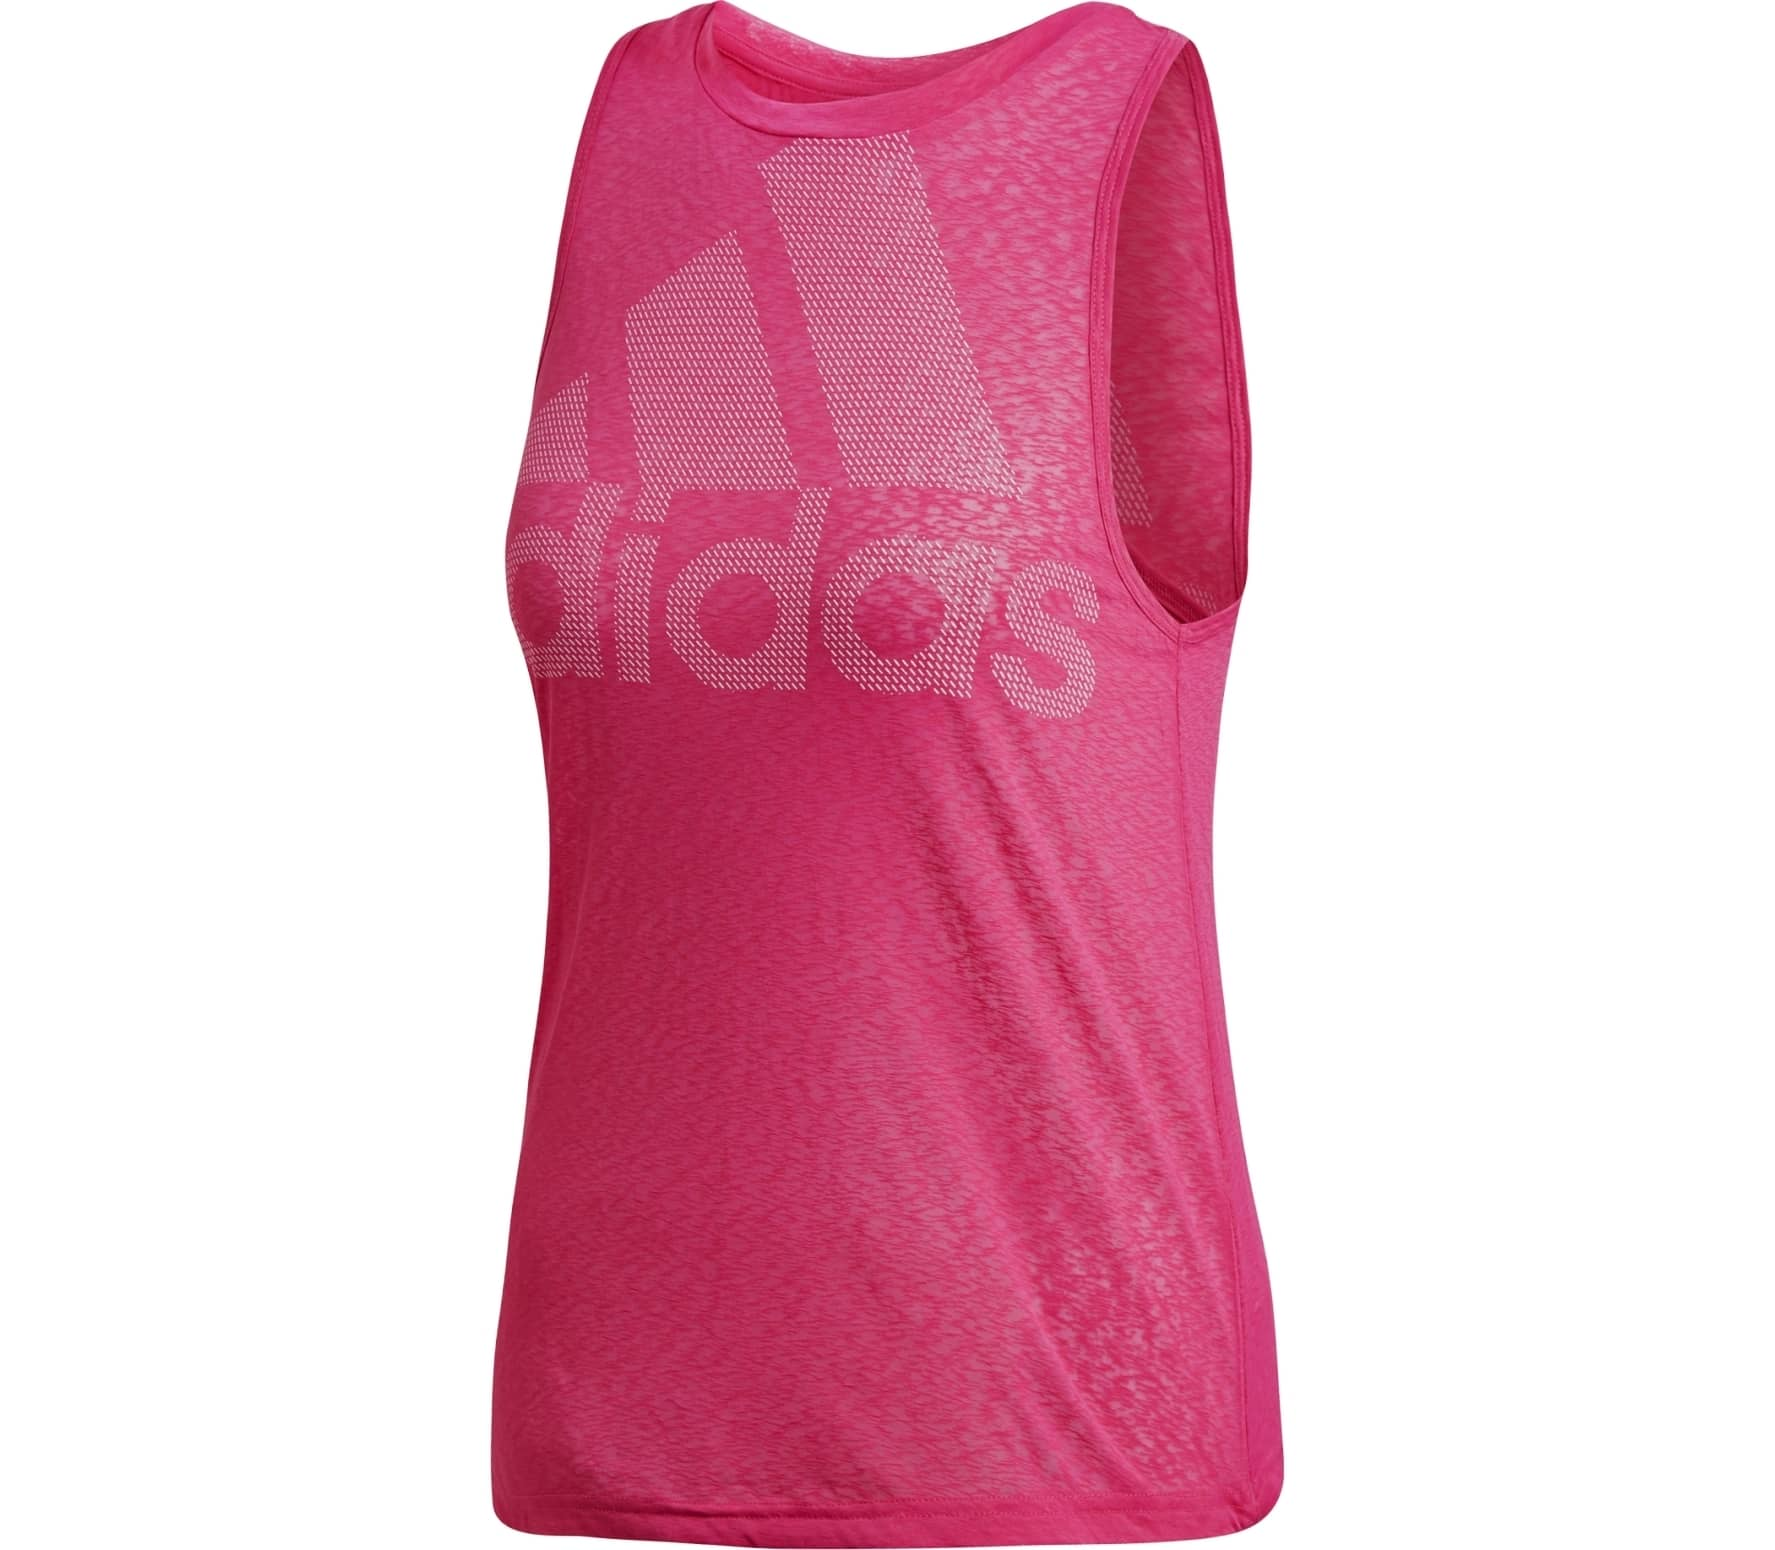 1eb5e7e1714 Adidas - Magic Logo women's training top (pink) online kopen in de ...